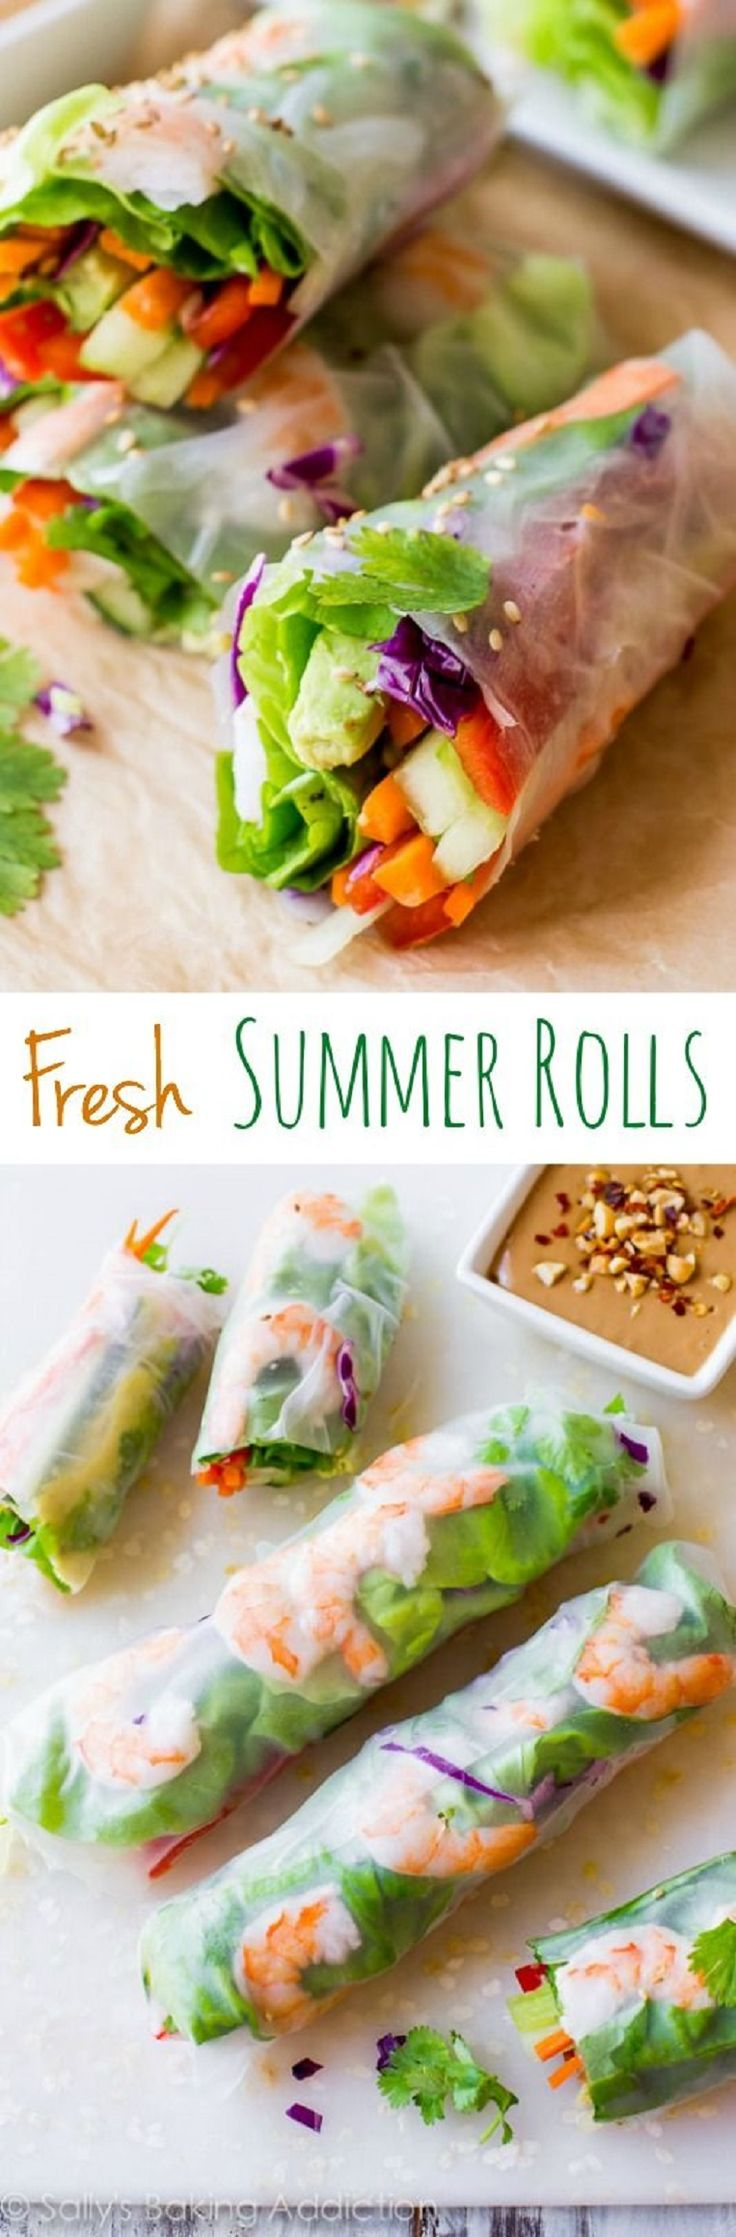 Homemade Fresh Summer Rolls with Easy Peanut Dipping Sauce. Replace the soy sauce with Bragg liquid aminos for a healthier sauce.